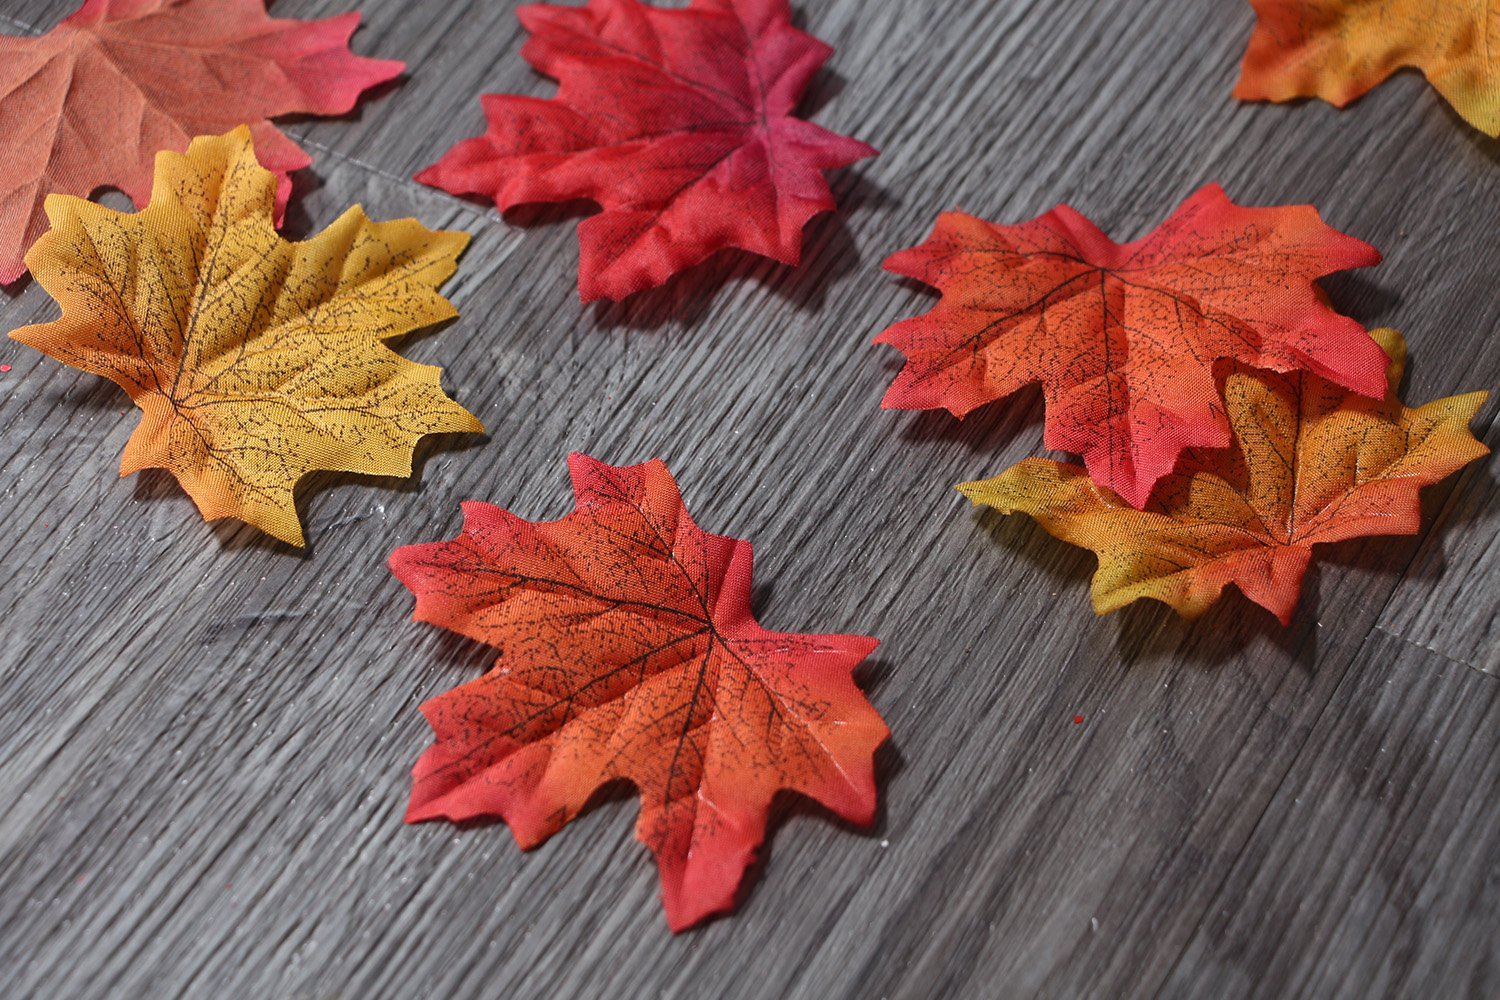 AmyHomie-300-Artificial-Fall-Maple-Leaves-in-a-Mixture-of-Autumn-Colors-Great-Autumn-Table-Scatters-for-Fall-Weddings-Autumn-Parties